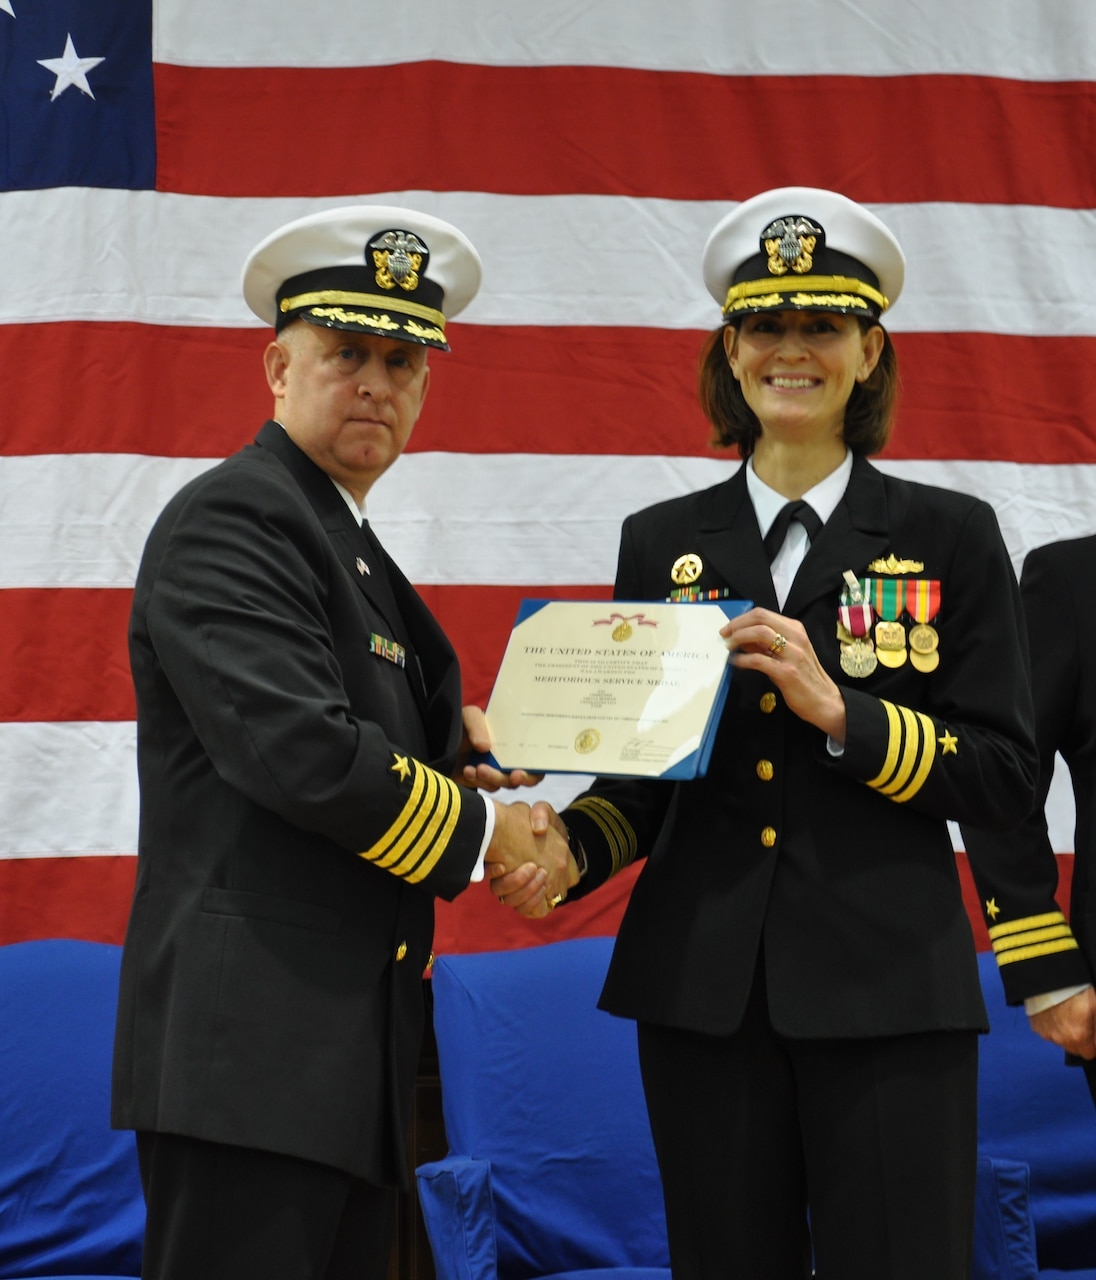 SASEBO, Japan (Dec. 12, 2019) Capt. Ed Thompson, deputy commander of Expeditionary Strike Group (ESG) 7, presents the Meritorious Service Medal to Cmdr. Greta Densham during the change of command ceremony for Naval Beach Unit (NBU) 7 onboard Commander, Fleet Activities Sasebo. Cmdr. Kirk Sowers relieved Densham as commanding officer. Under Densham's leadership, the NBU 7 team completed eight forward-deployed naval forces (FDNF) deployments, 20 multi-lateral exercises, and two disaster relief efforts in the U.S. 7th Fleet area of responsibility. In November, the unit participated in Tiger Triumph, the first-ever tri-service exercise involving the U.S. Navy and Marine Corps and Indian Army, Navy and Air Force. NBU 7, part of Expeditionary Strike Group (ESG) 7, is operating in the Indo-Pacific region to enhance interoperability with partners and serve as a ready-response force for any type of contingency.